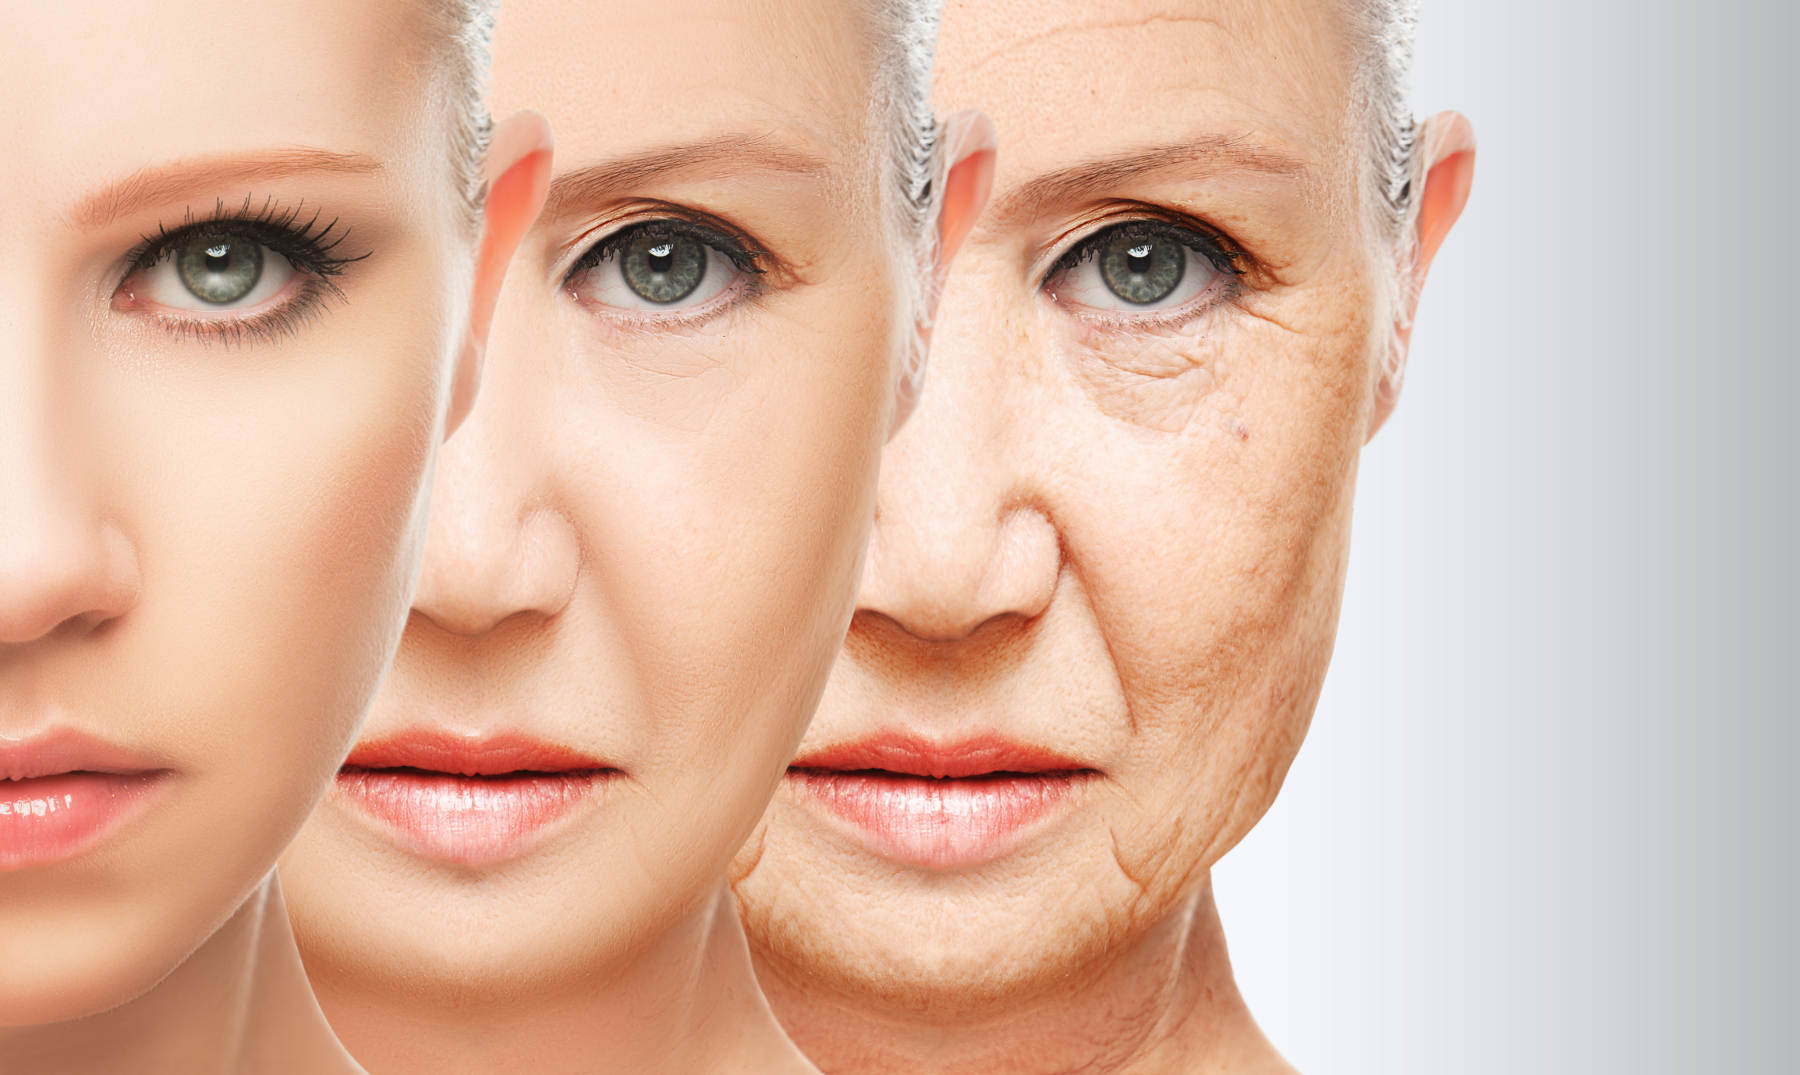 bigstock-Beauty-Concept-Skin-Aging-Ant-722088371